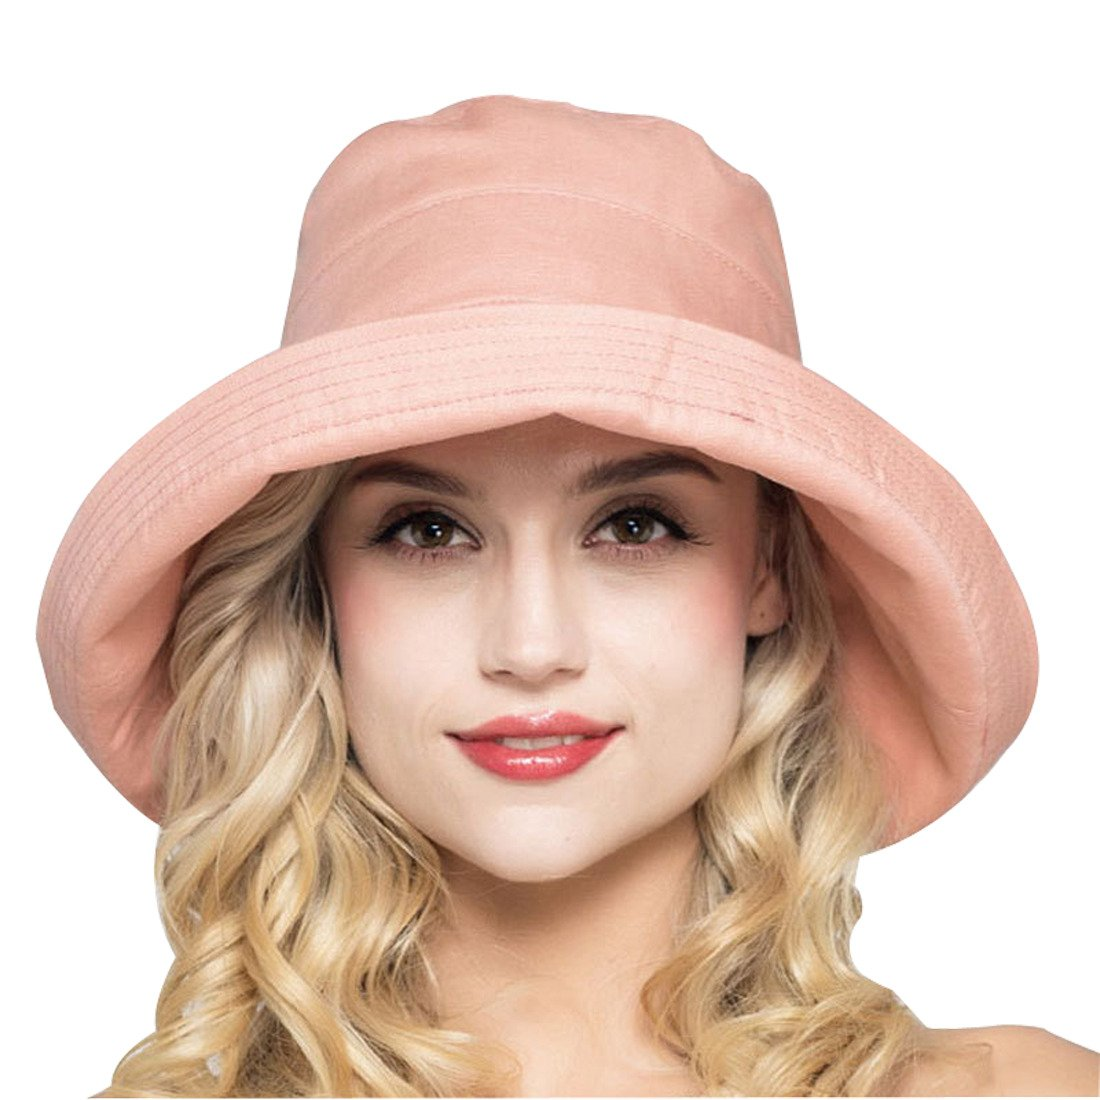 Kafeimali Women's Cotton Bucket Hat Sun Summer Color Beach Caps Big Fold-up Brim XMZ1